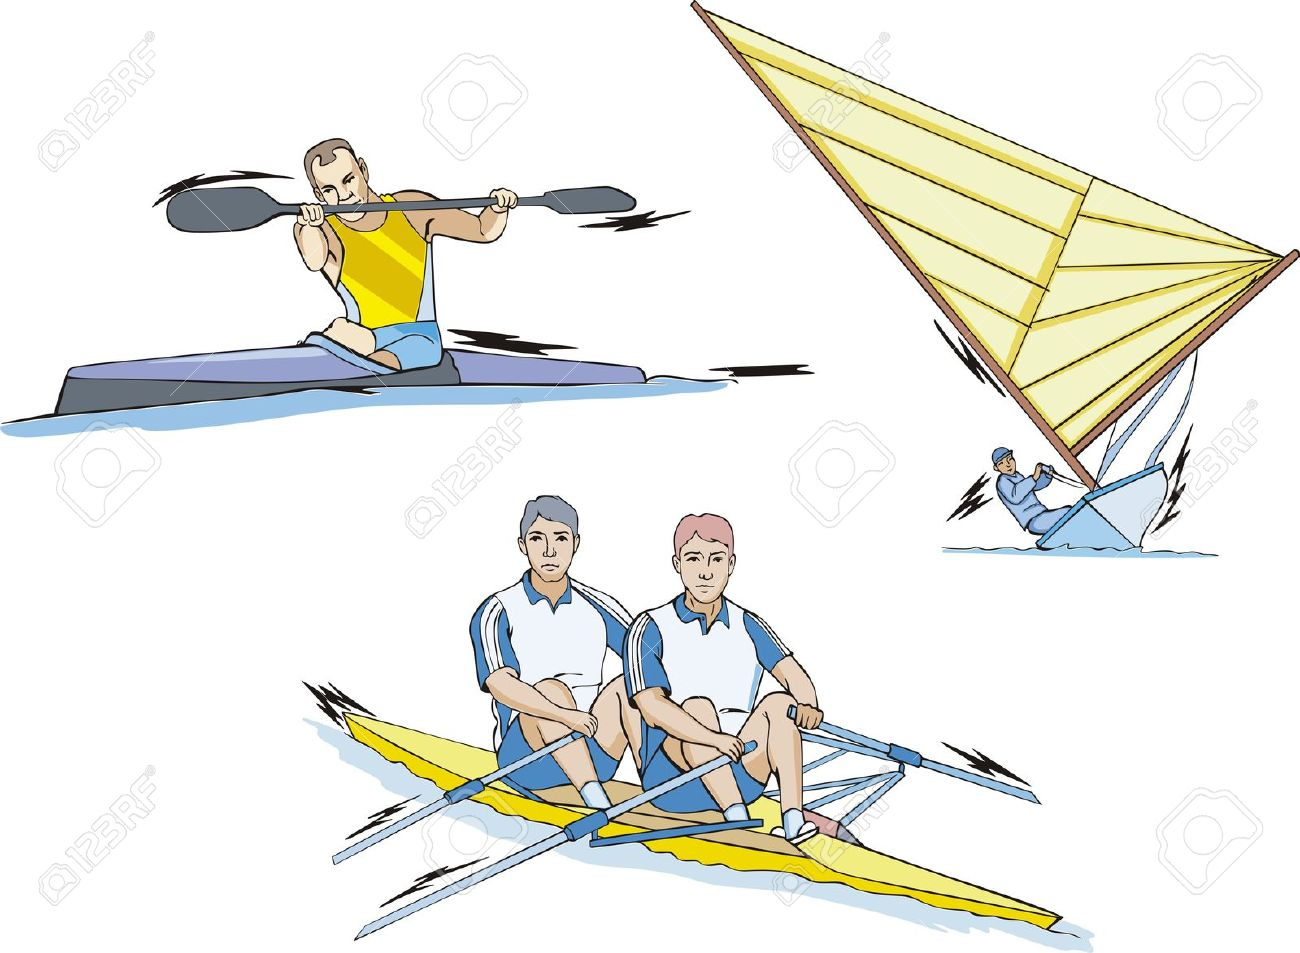 Water Sports: Whitewater Slalom, Rowing And Sailing. Royalty Free.